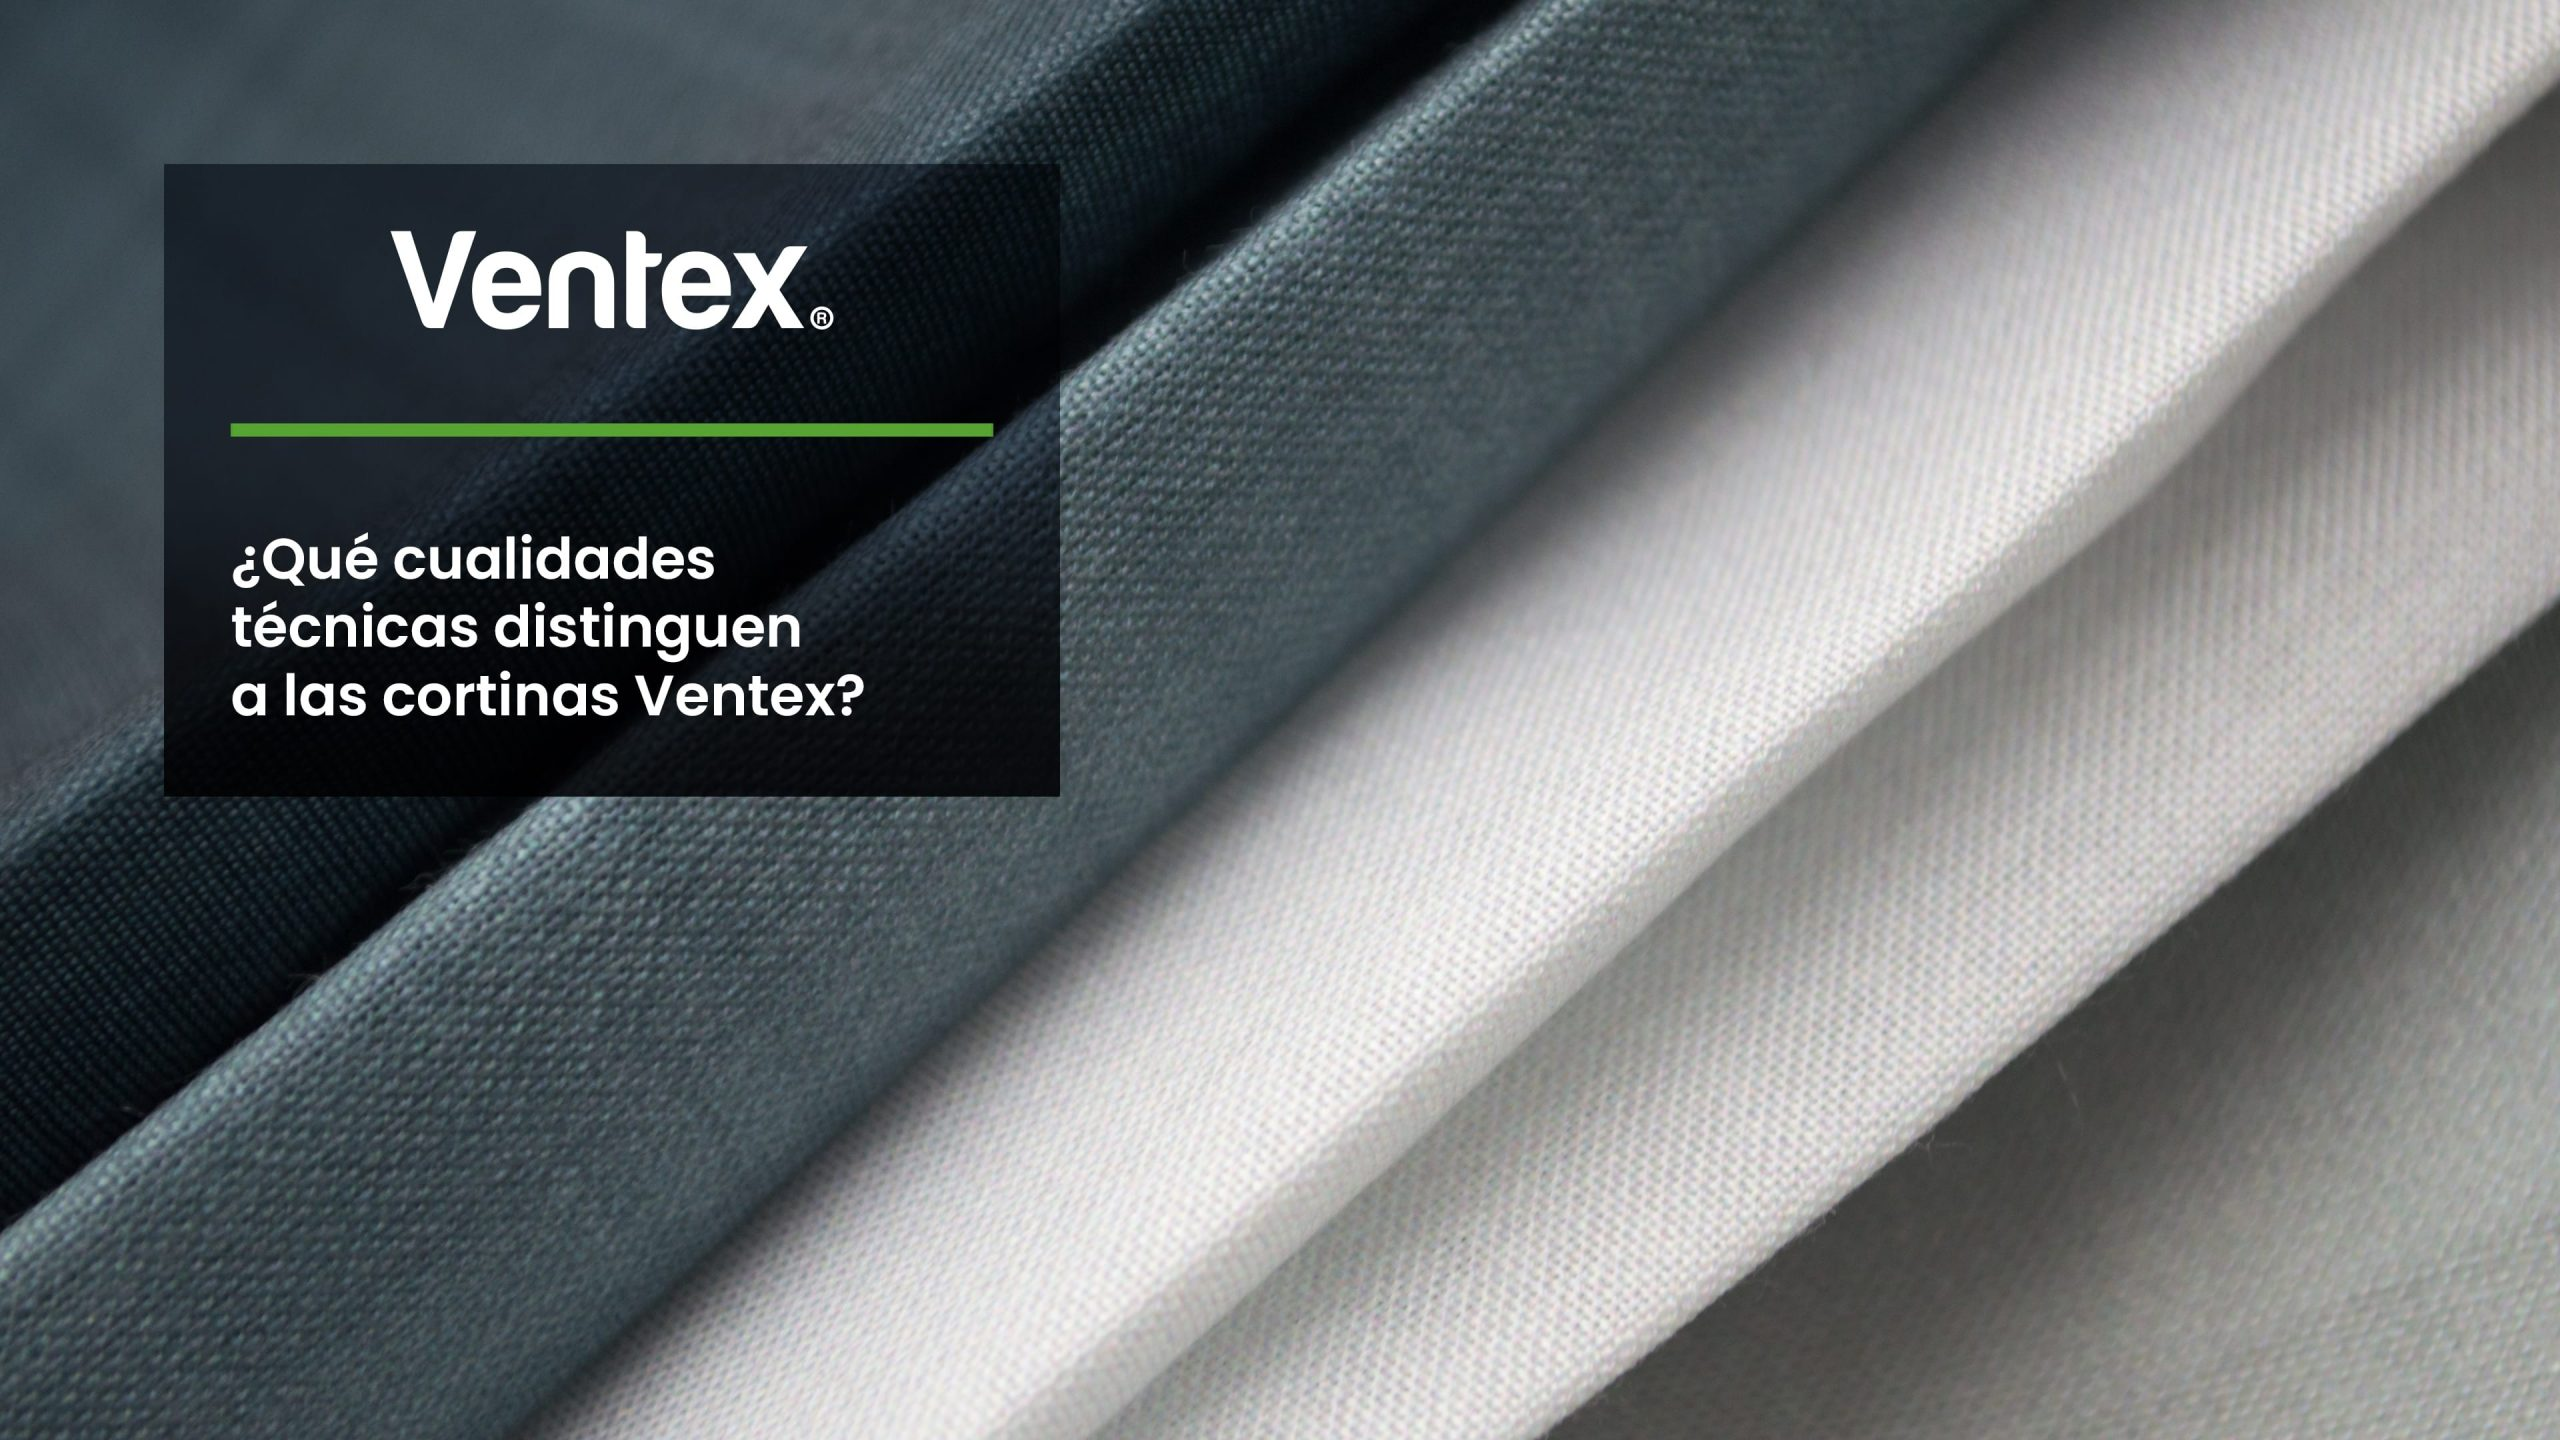 What technical qualities differentiate Ventex curtains?